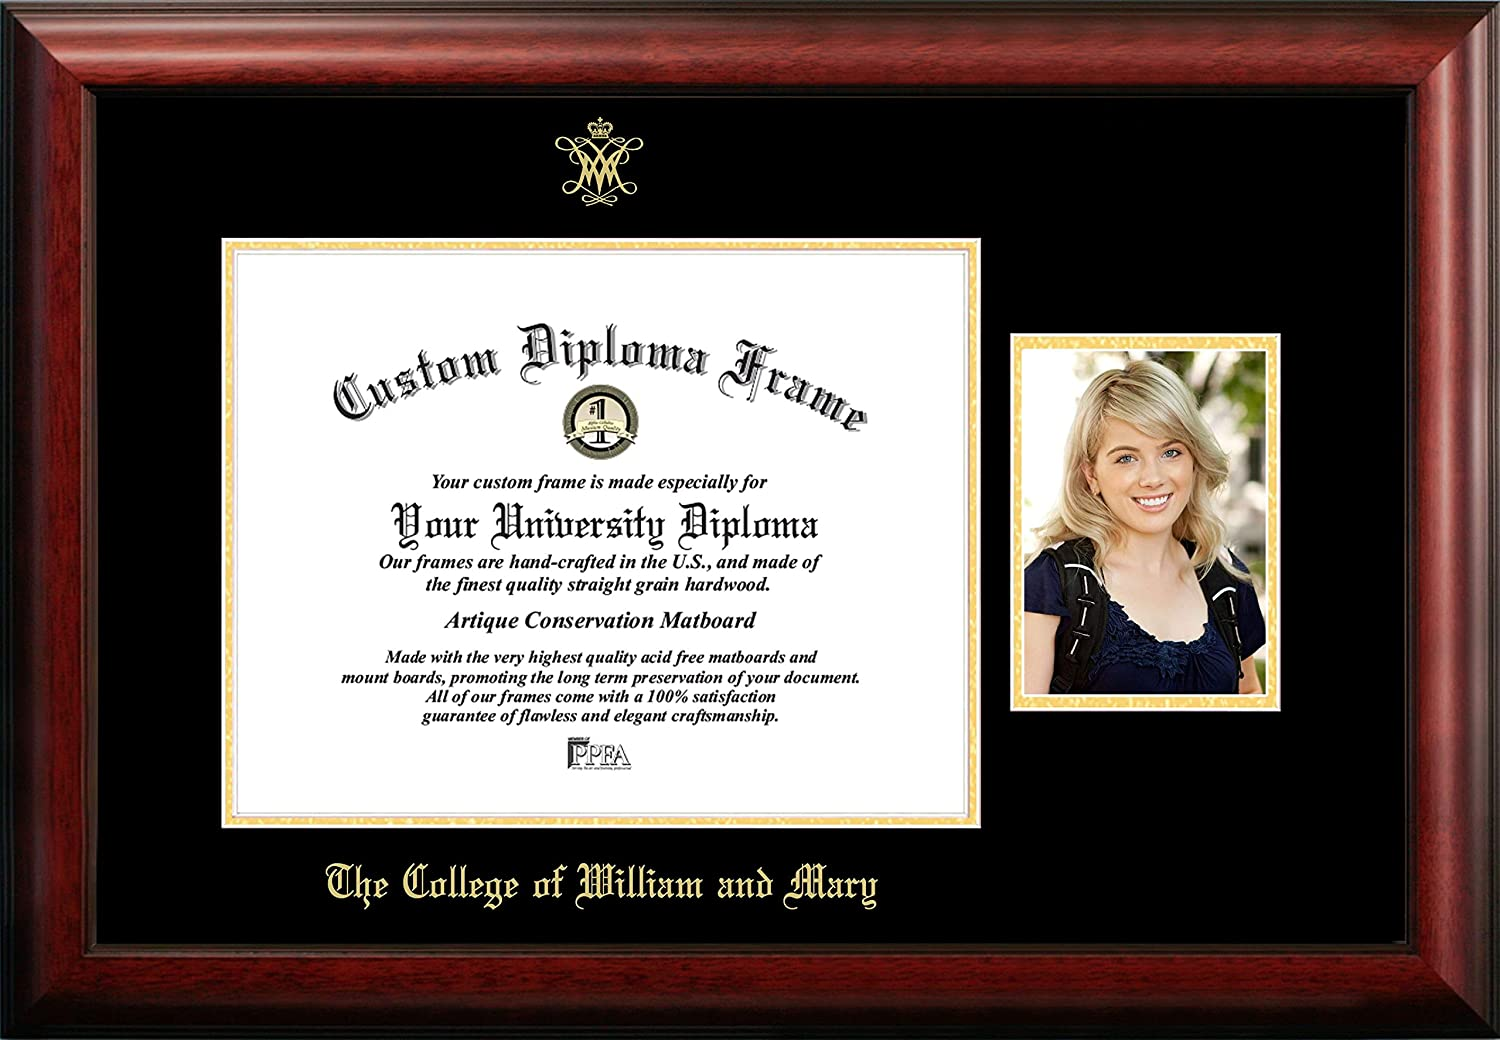 Campus Images depot Super popular specialty store NCAA Unisex Gold Embossed Diploma Frame x7 5 with